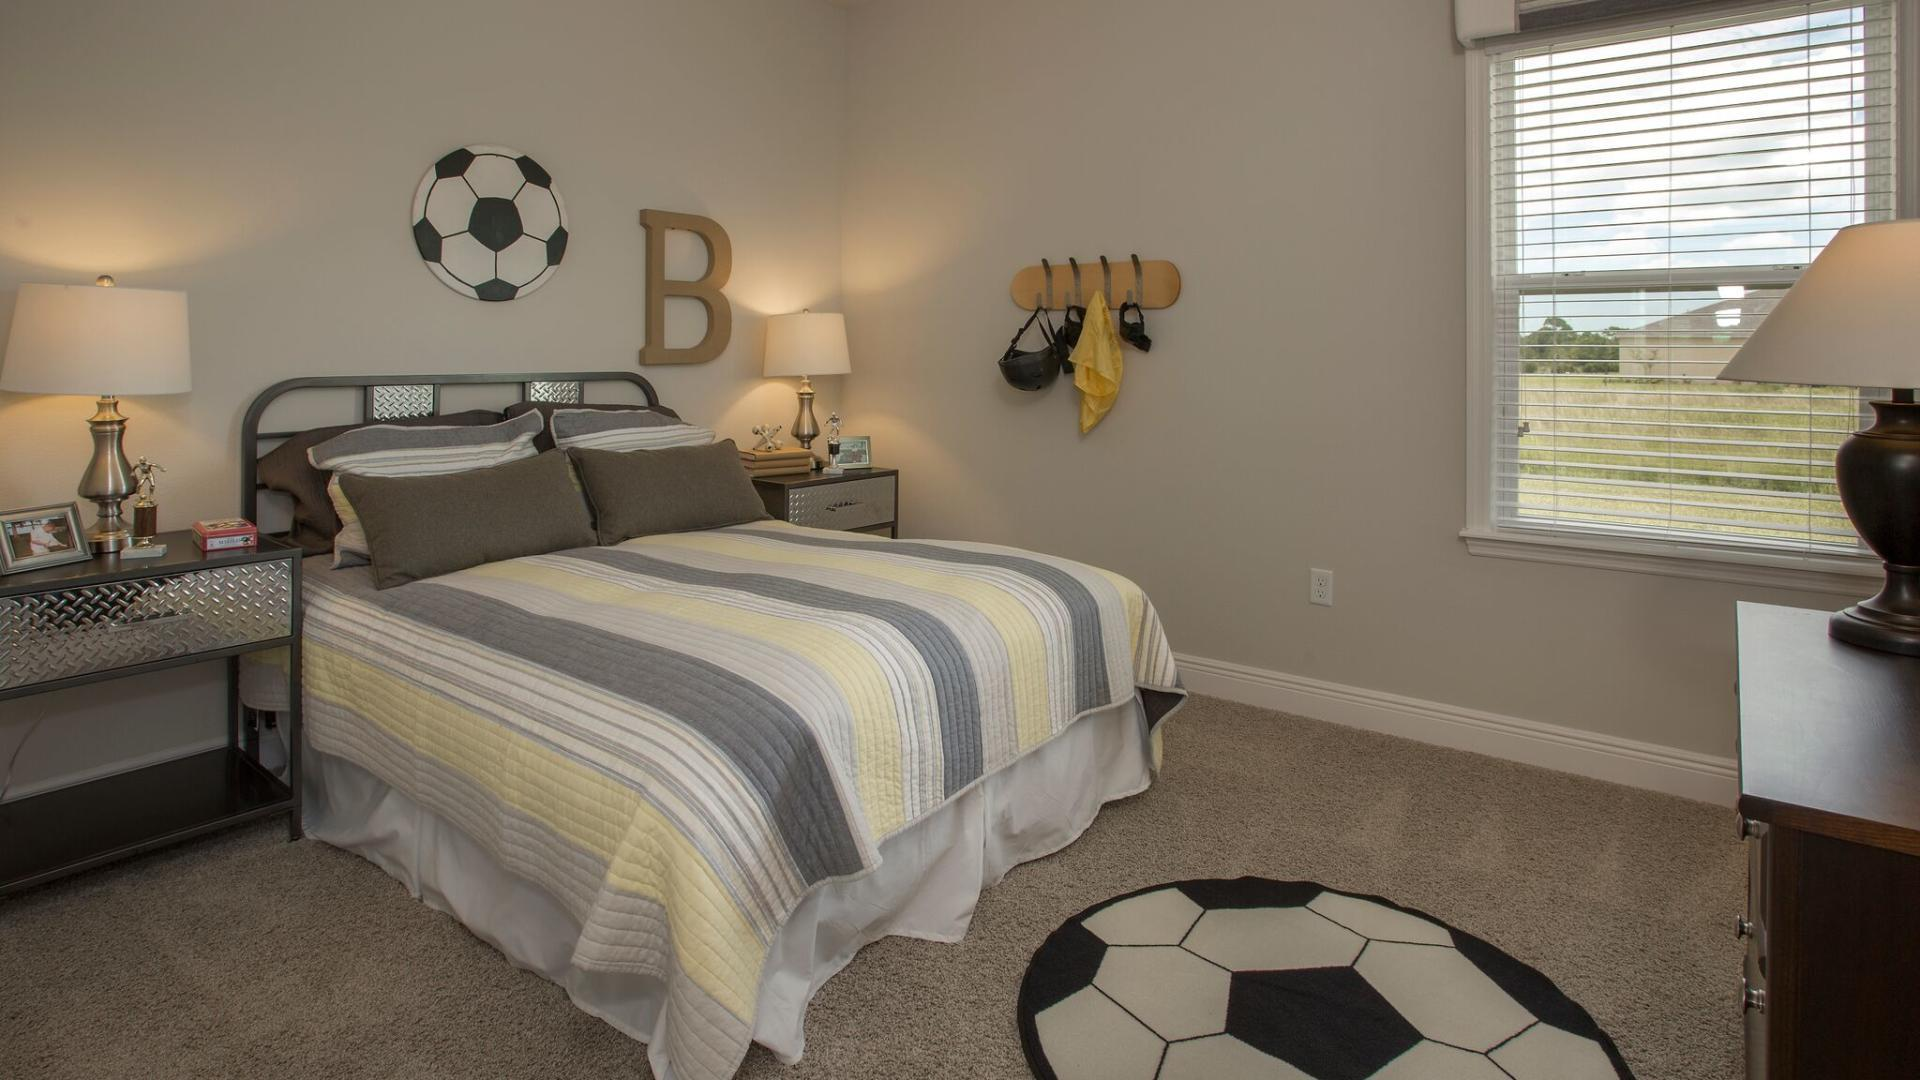 Bedroom featured in the Harmony By Maronda Homes in Ocala, FL